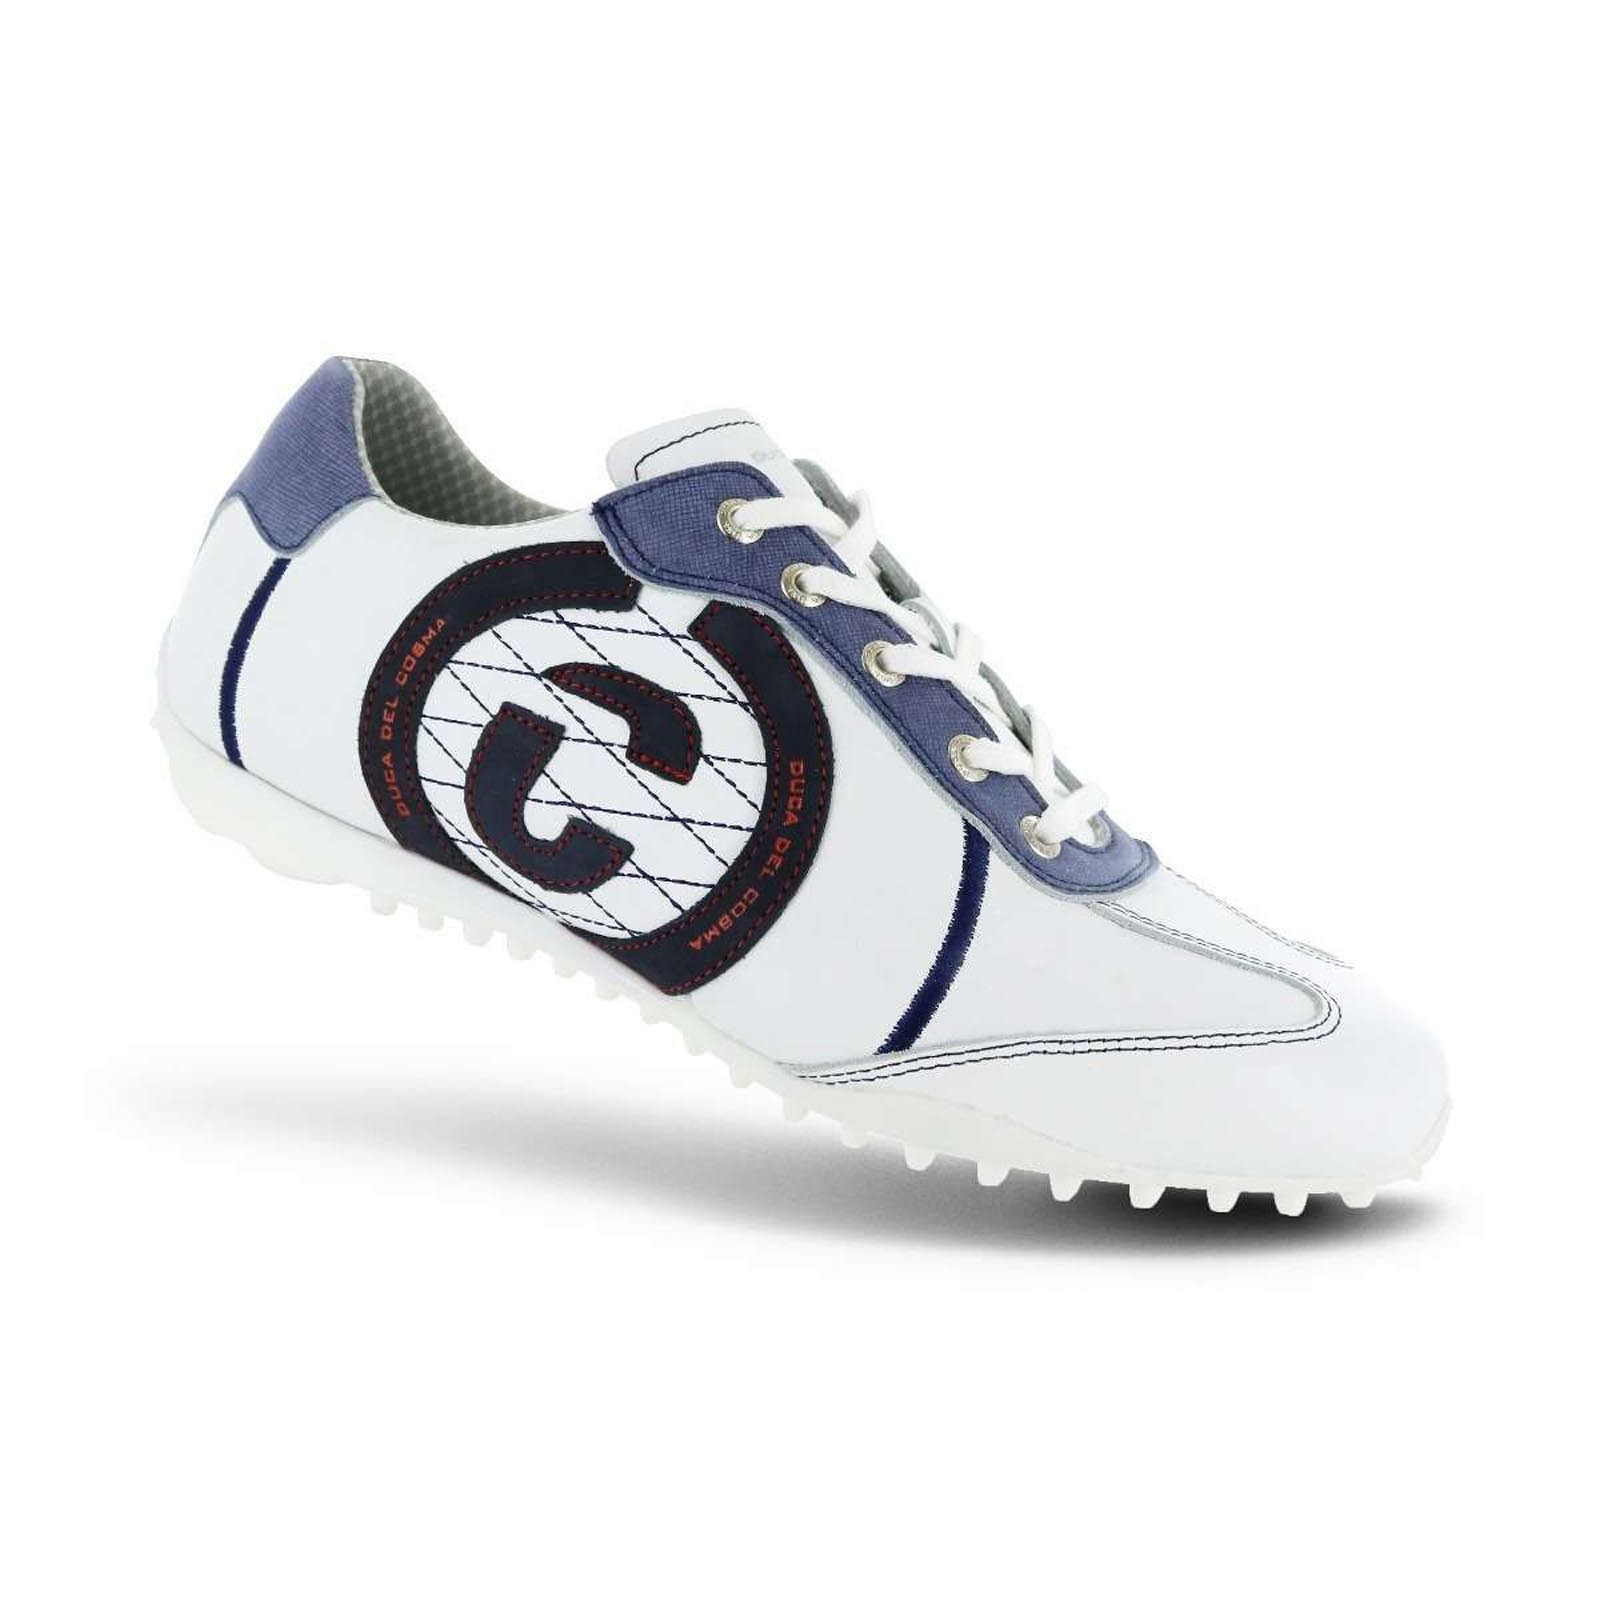 Duca del Cosma Kuba Golf Shoes